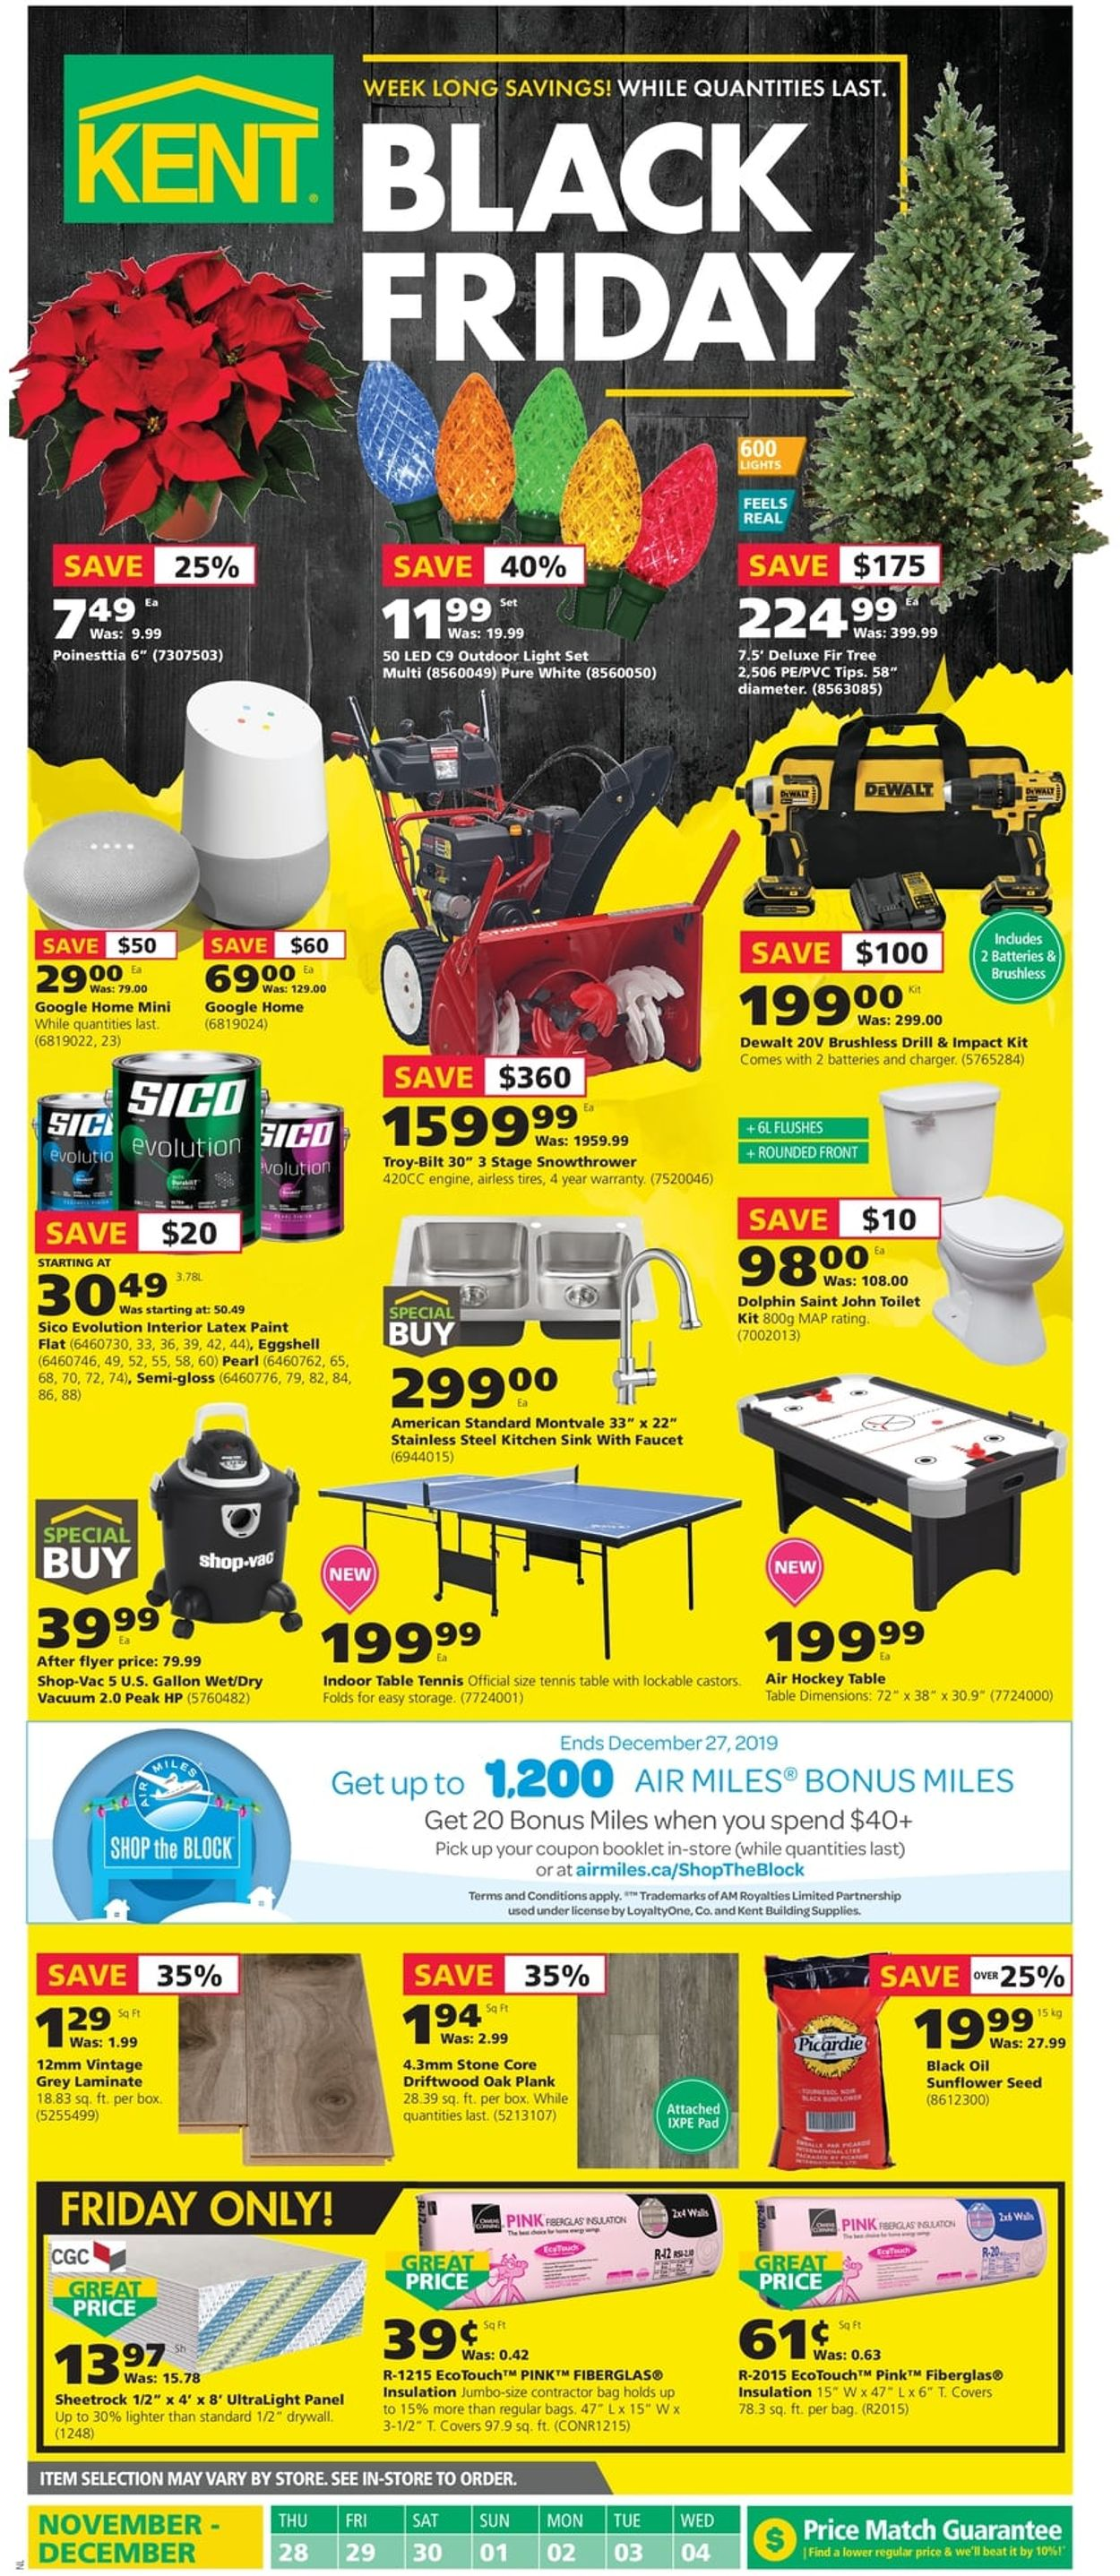 Kent BLACK FRIDAY 2019 FLYER